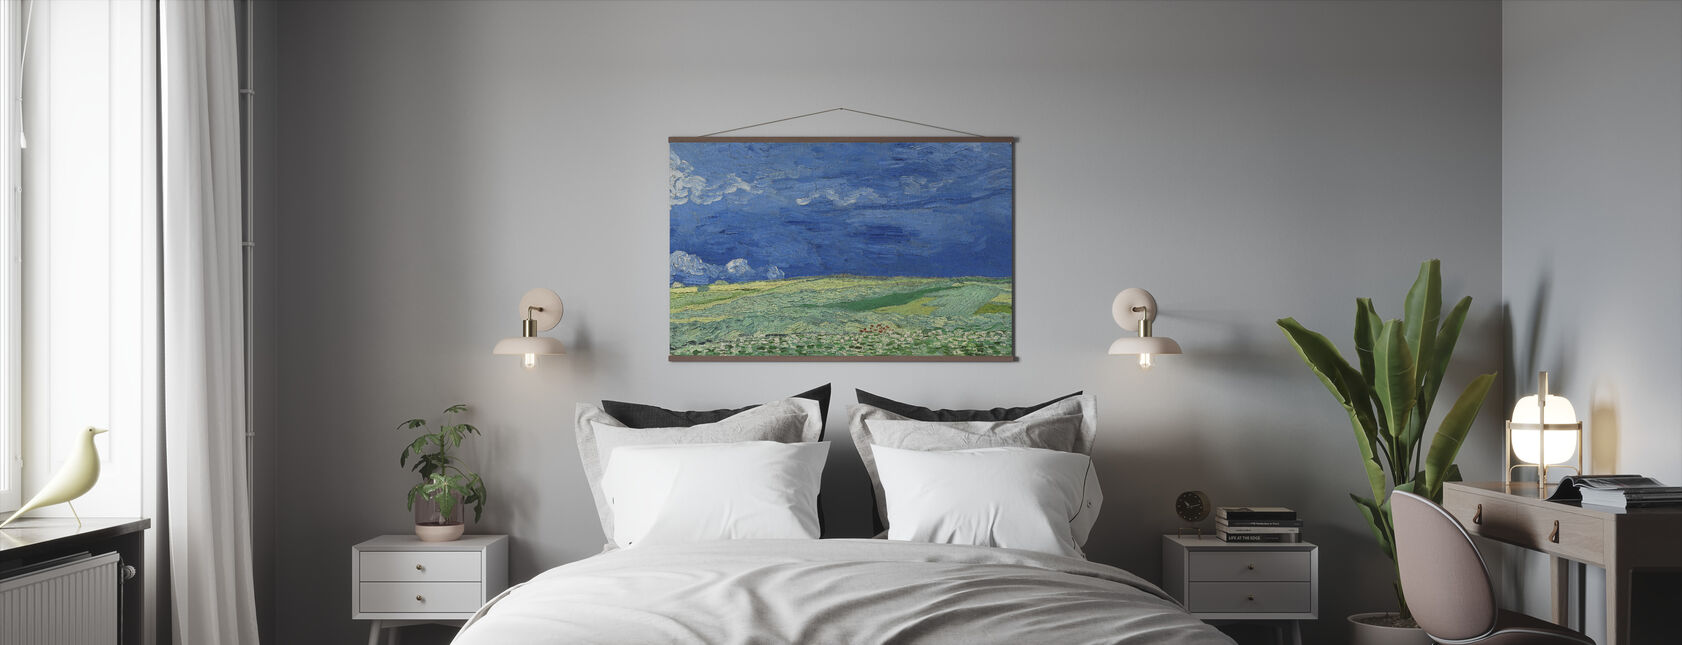 Wheatfield - Vincent Van Gogh - Poster - Bedroom